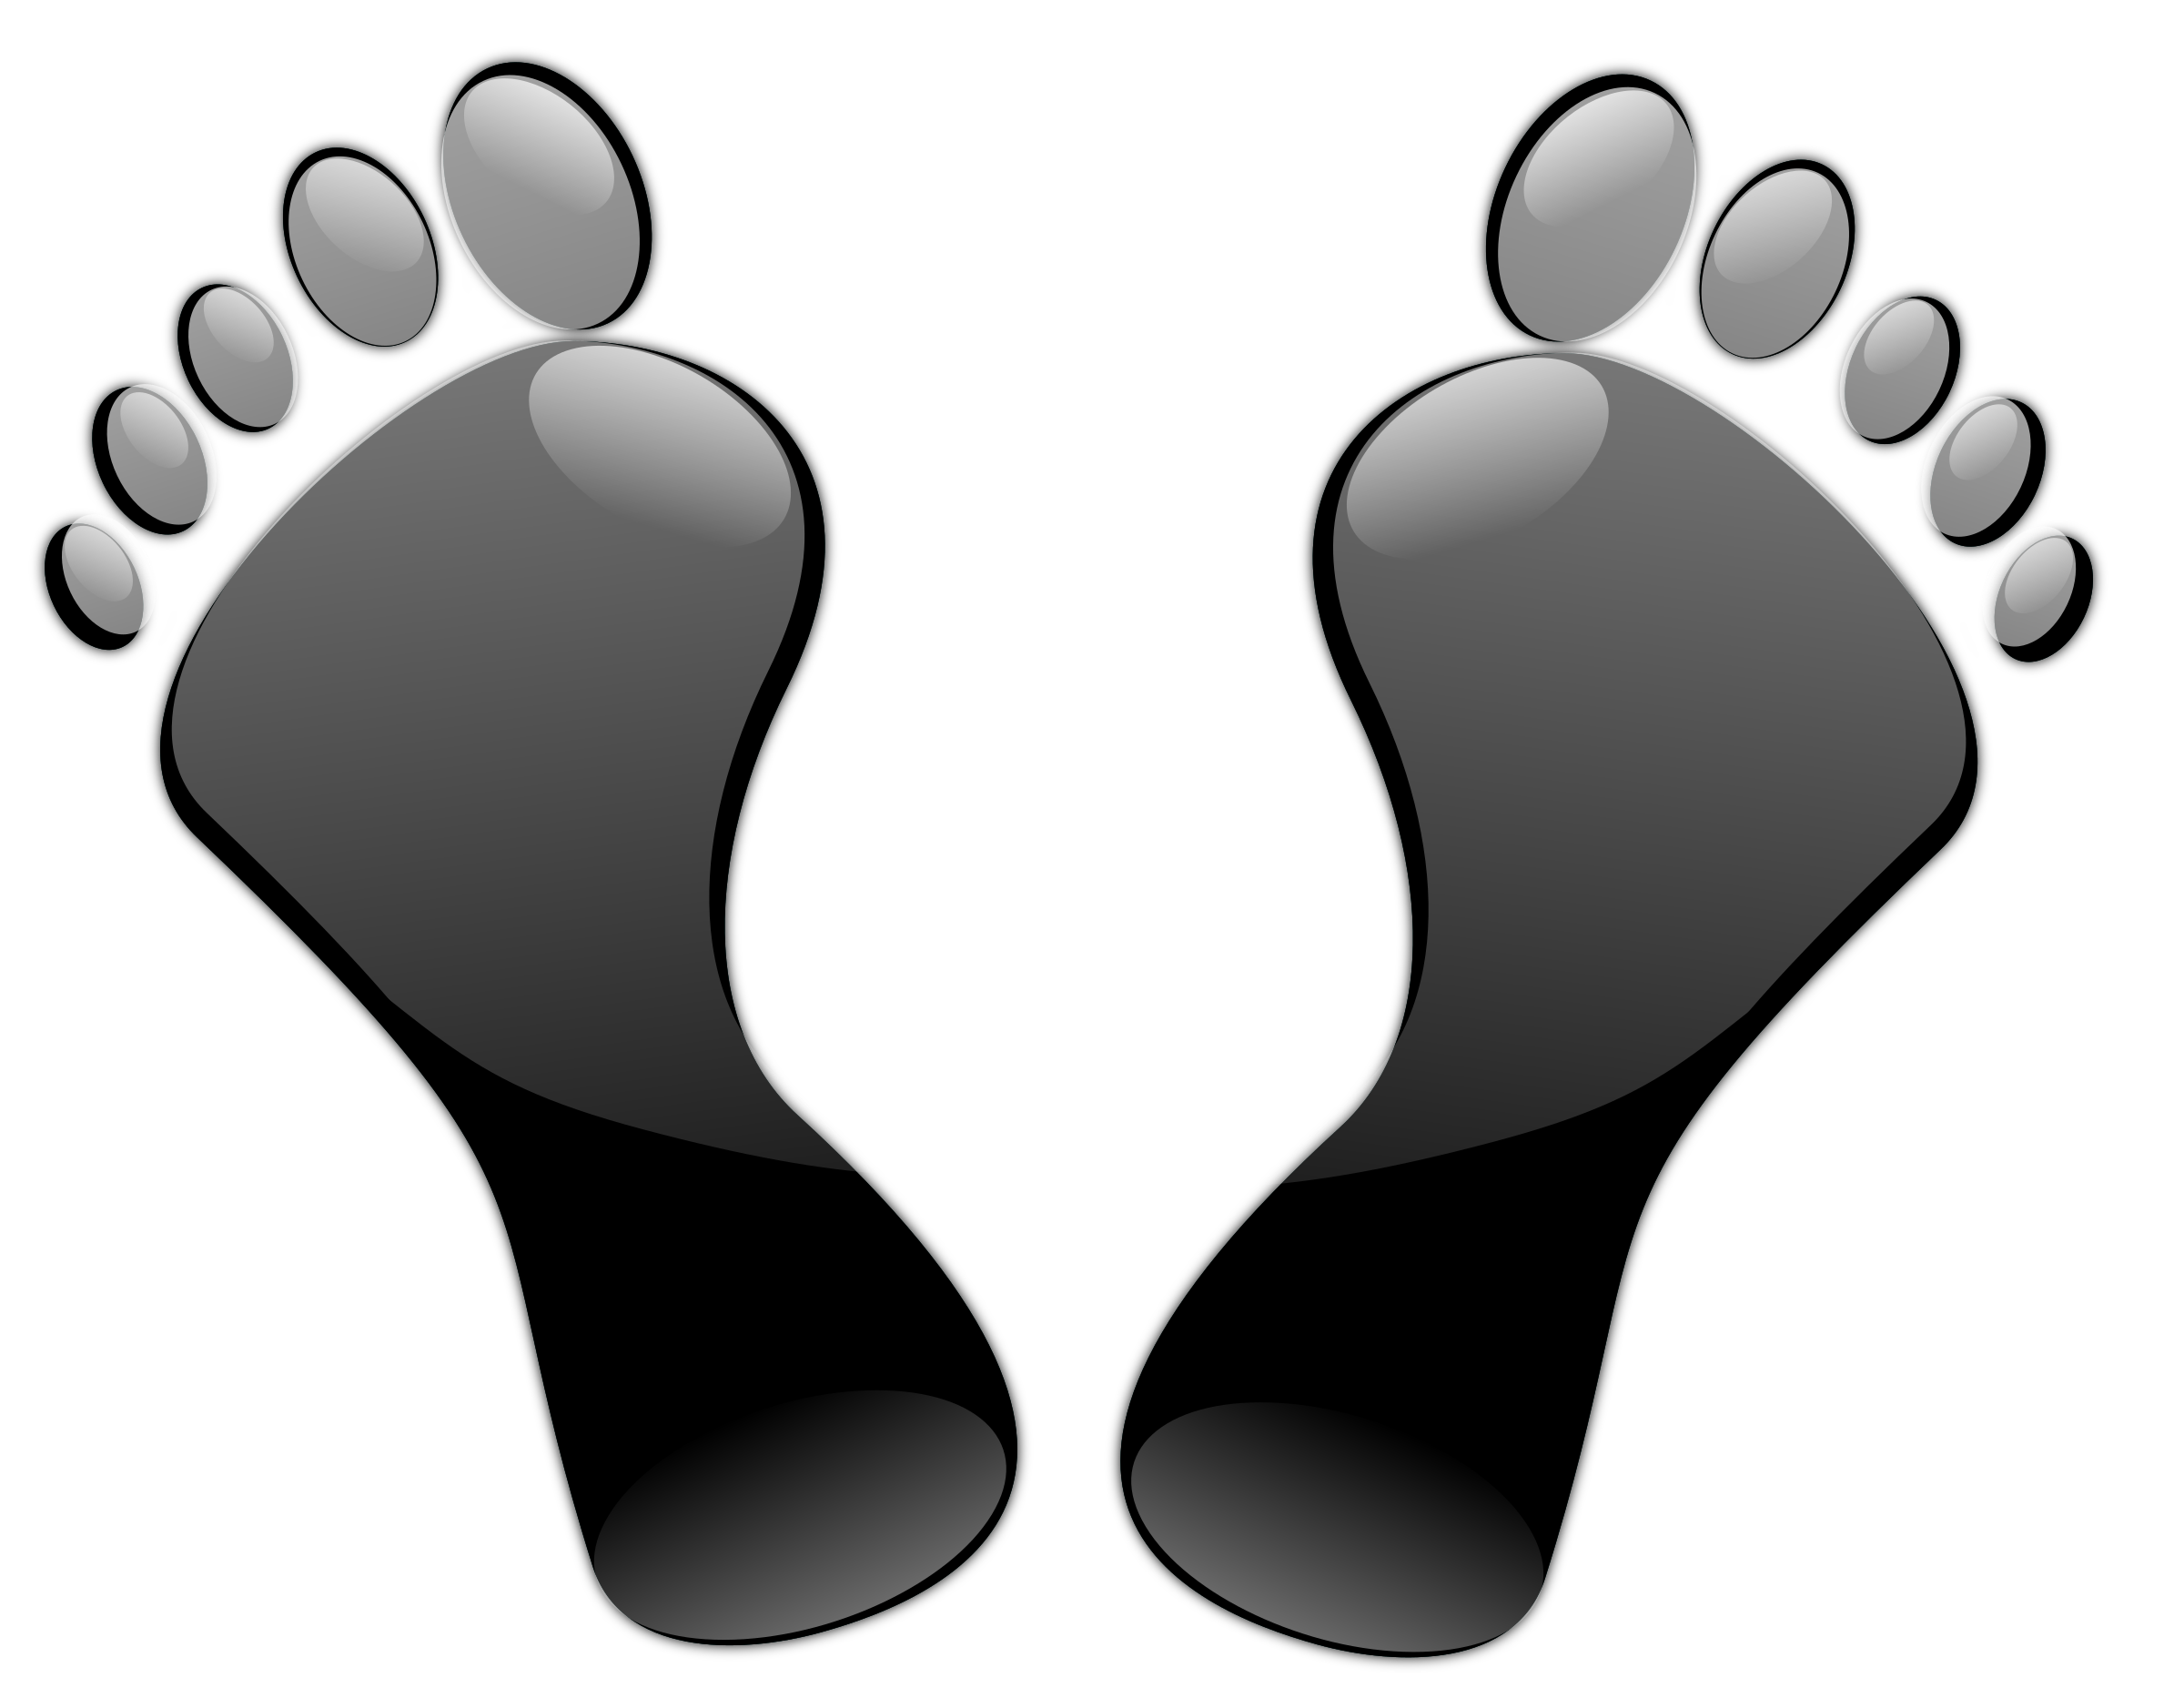 Foot clipart bottom foot. Black feet icons png